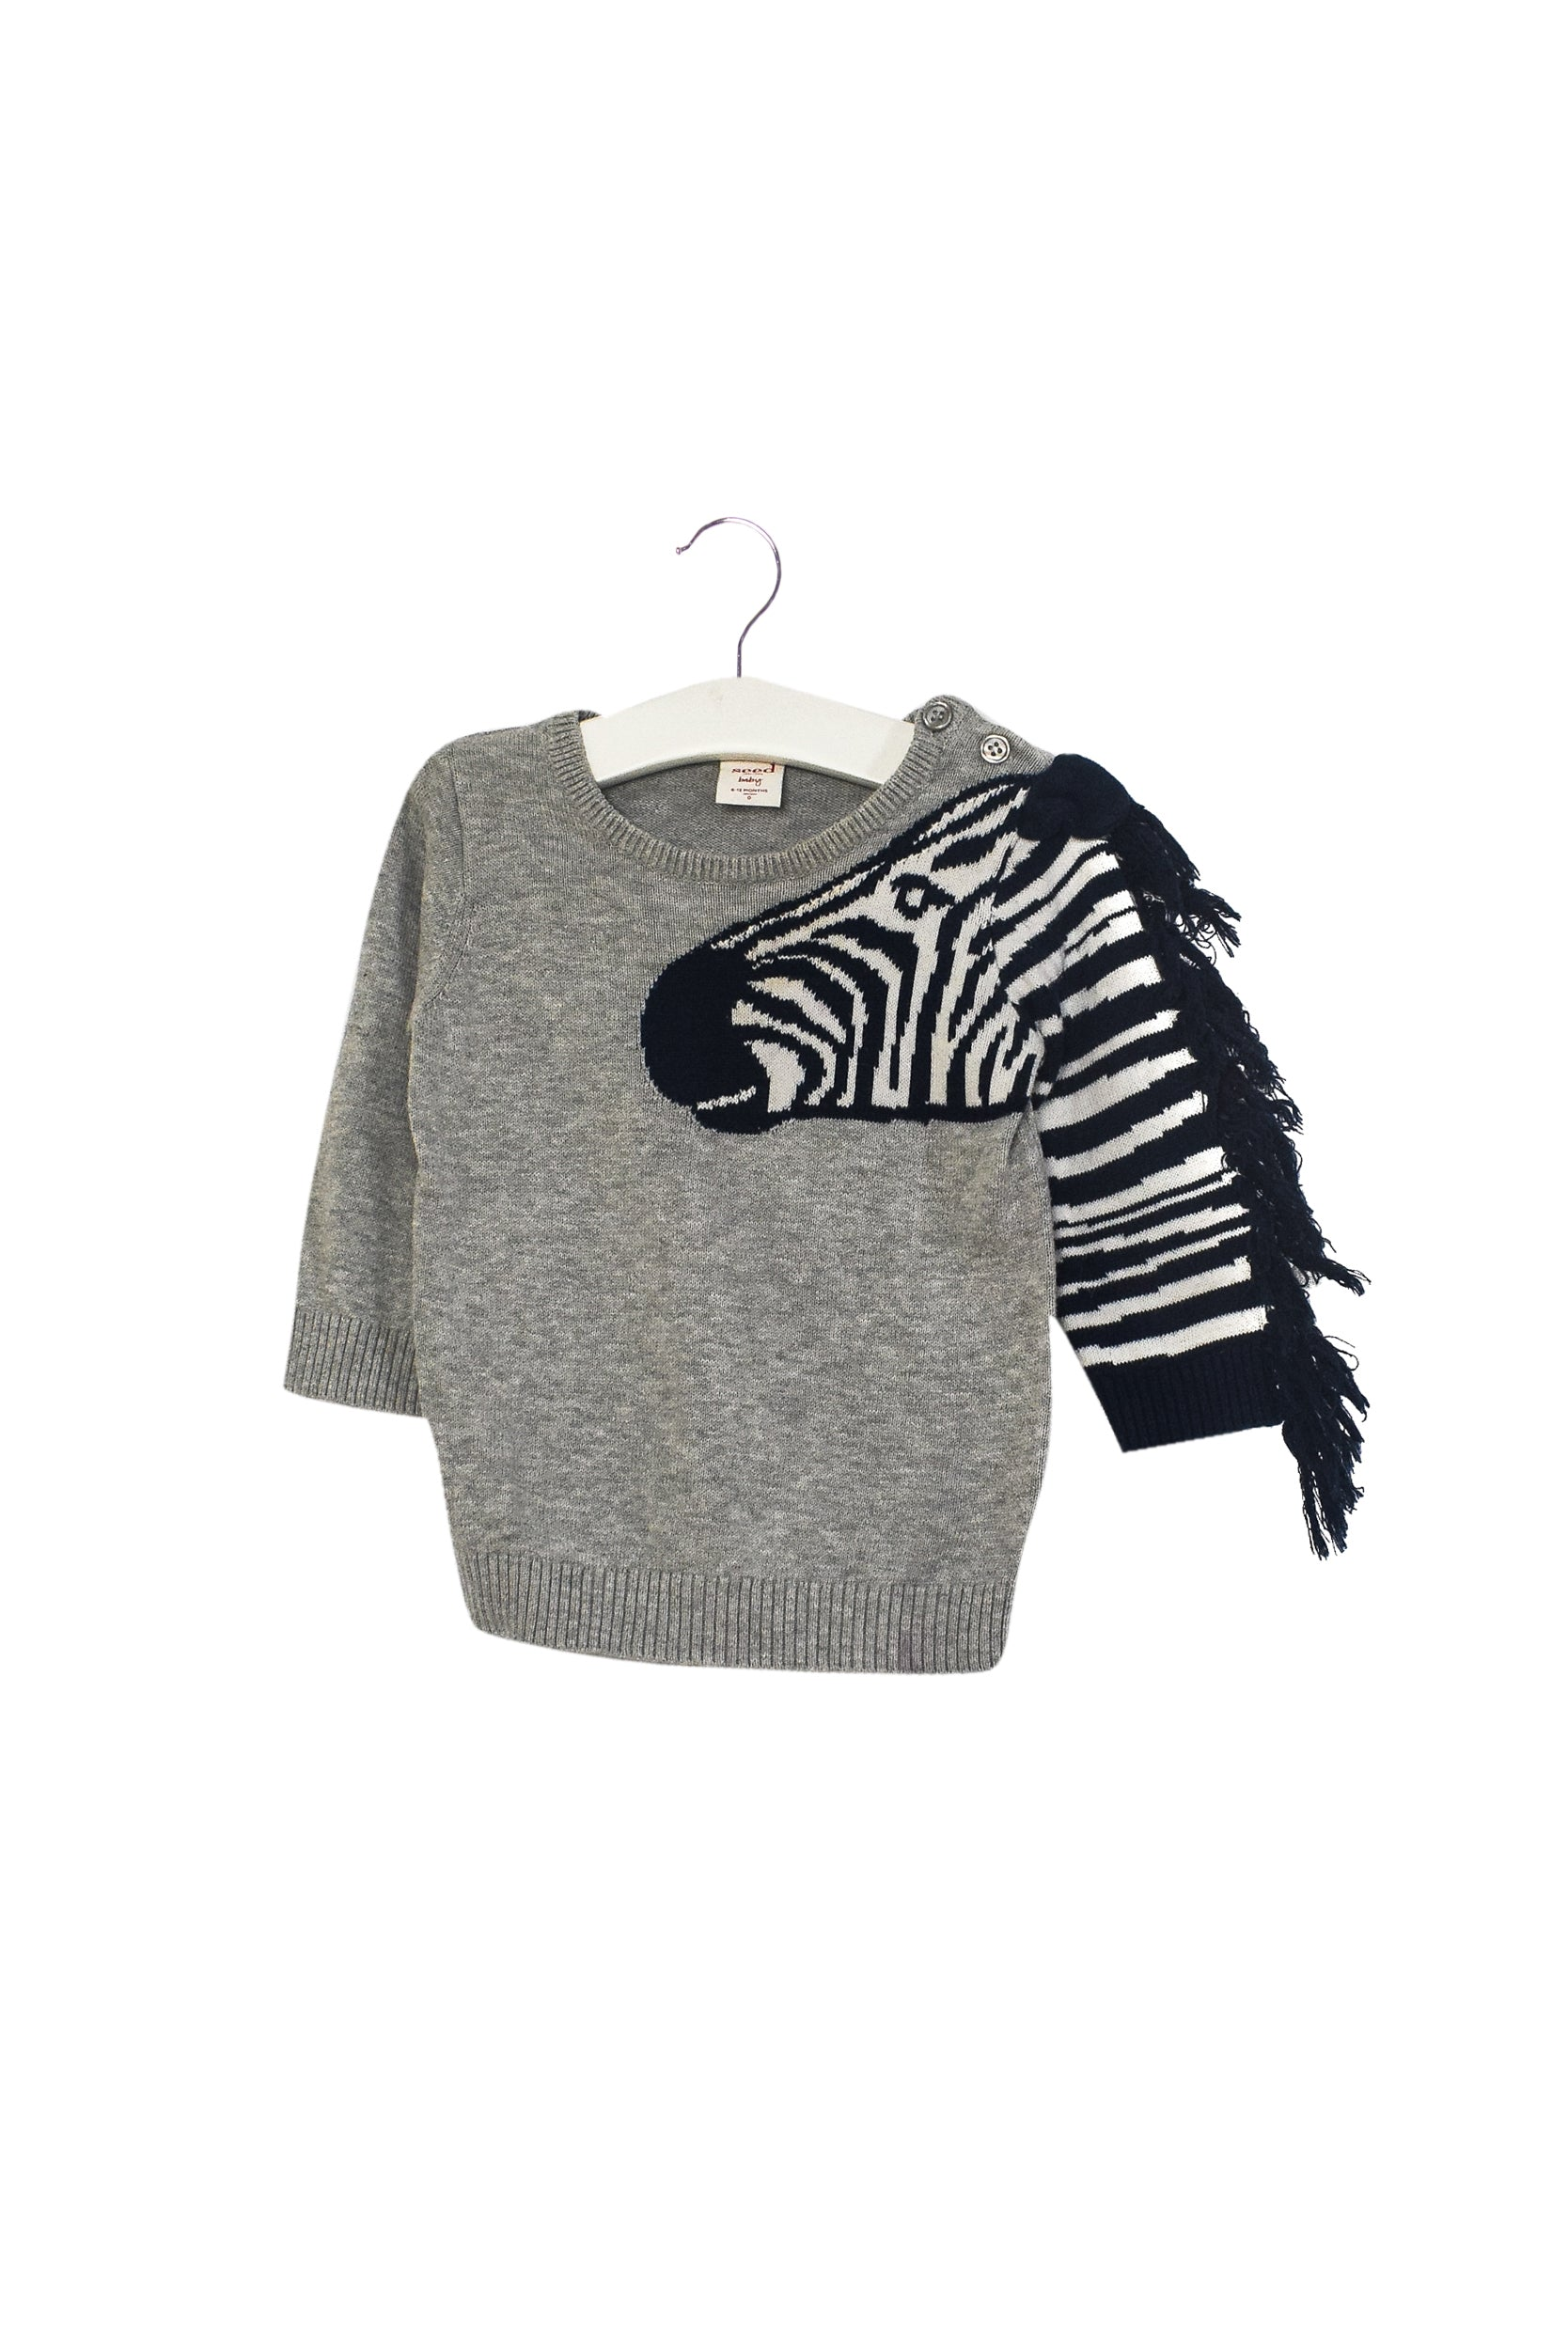 Knit Sweater 6-12M at Retykle